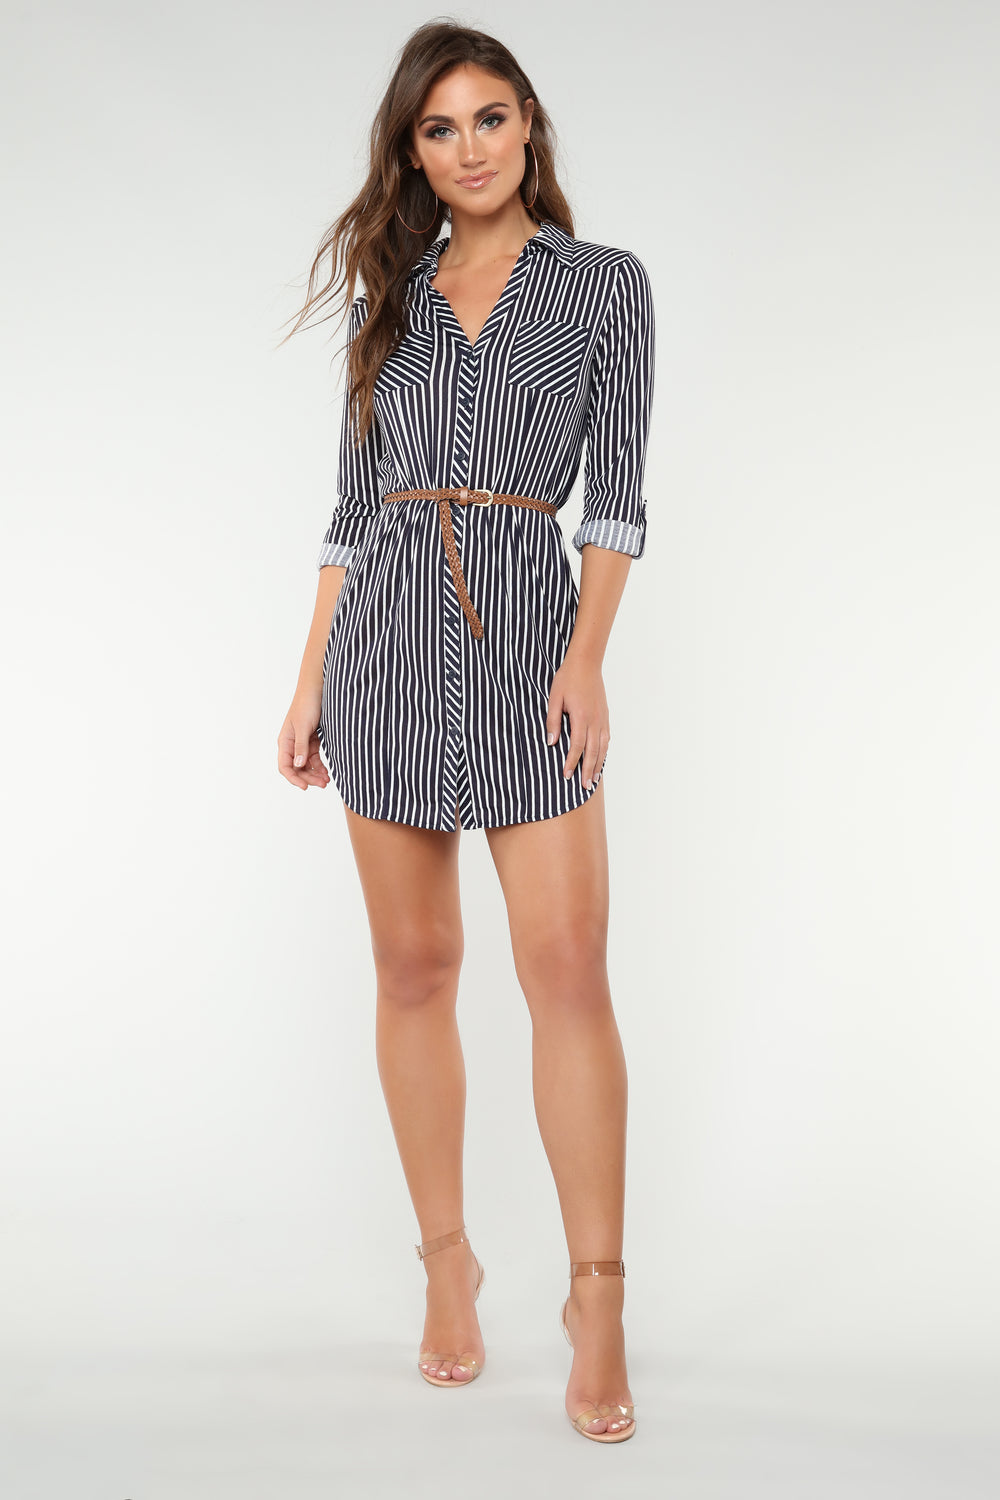 Into The Woods Tunic Dress - Navy/White